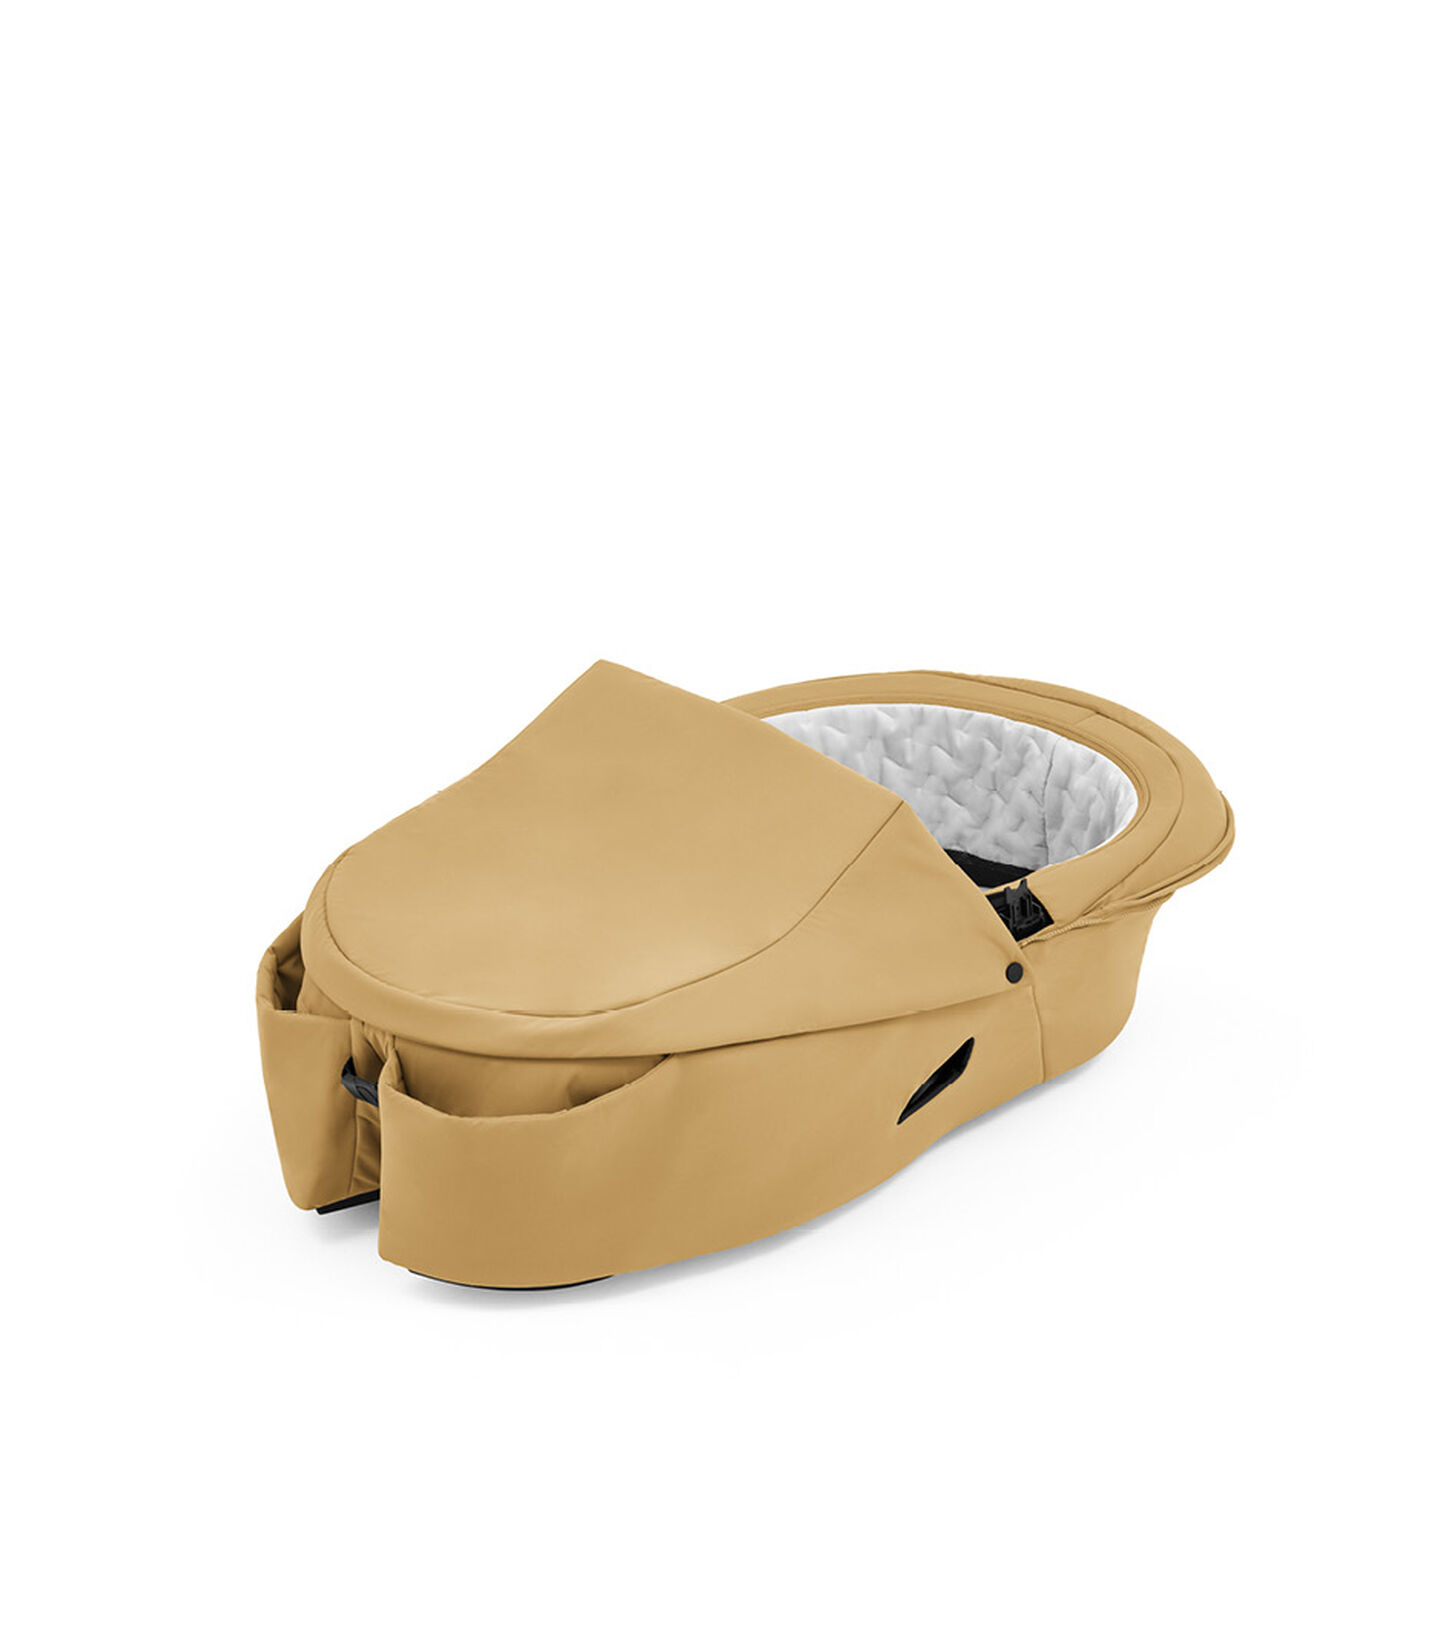 Stokke® Xplory® X Golden Yellow Carry Cot, no canopy. view 1